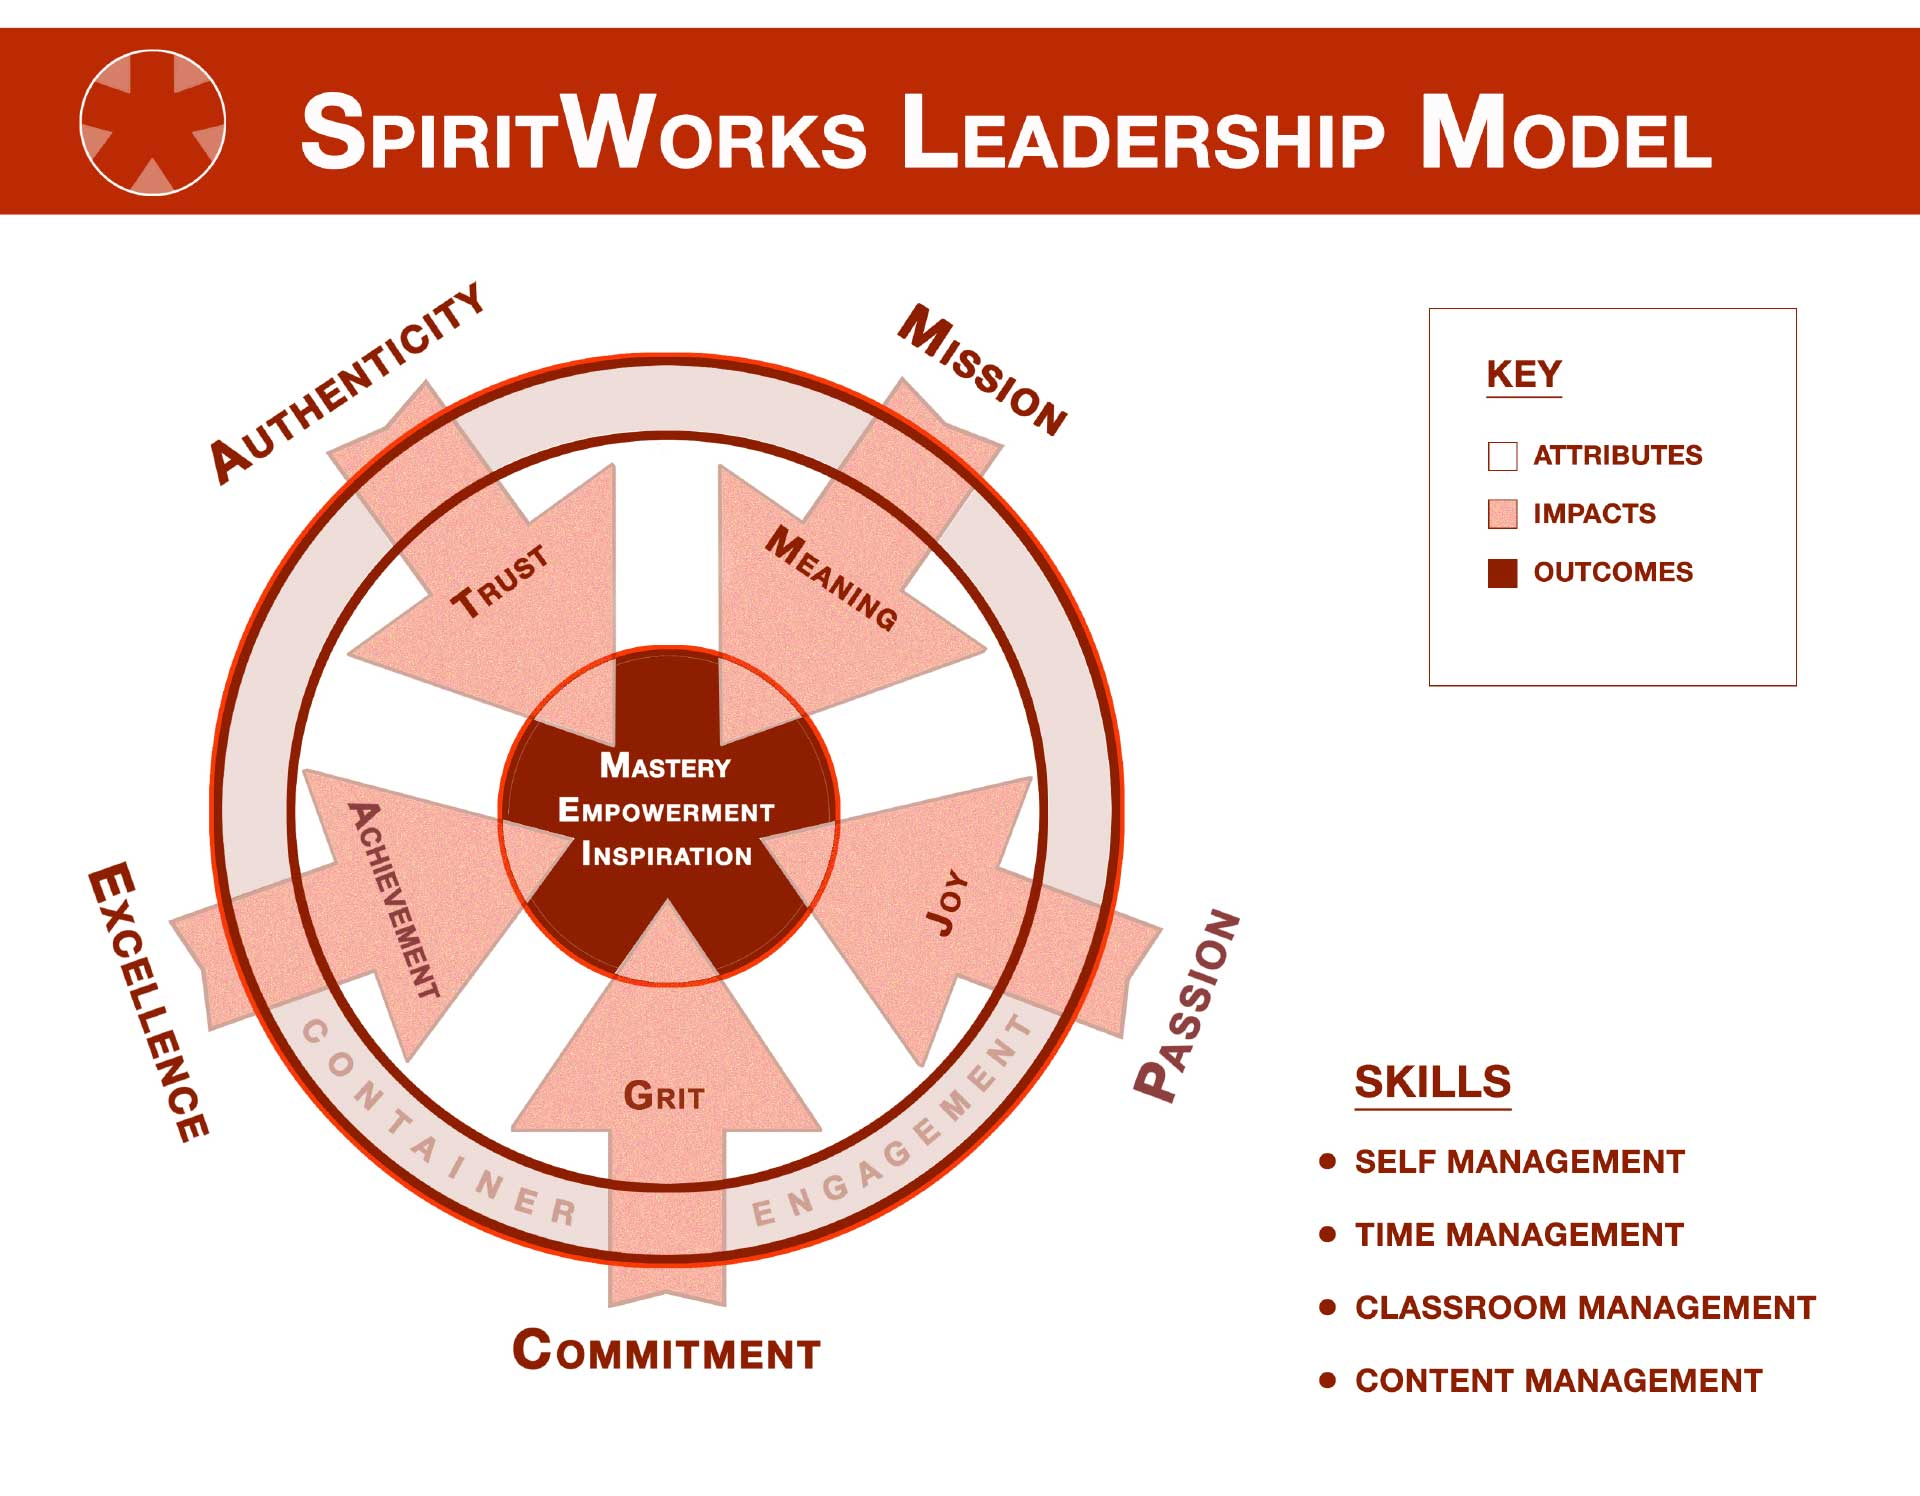 SpiritWorks Leadership Model